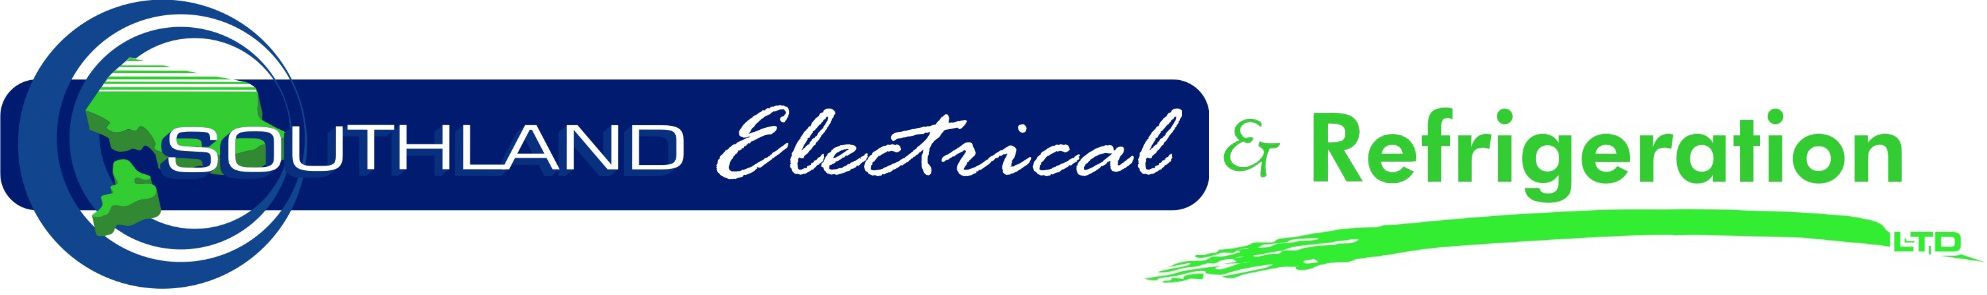 Southland Electrical & Refrigeration